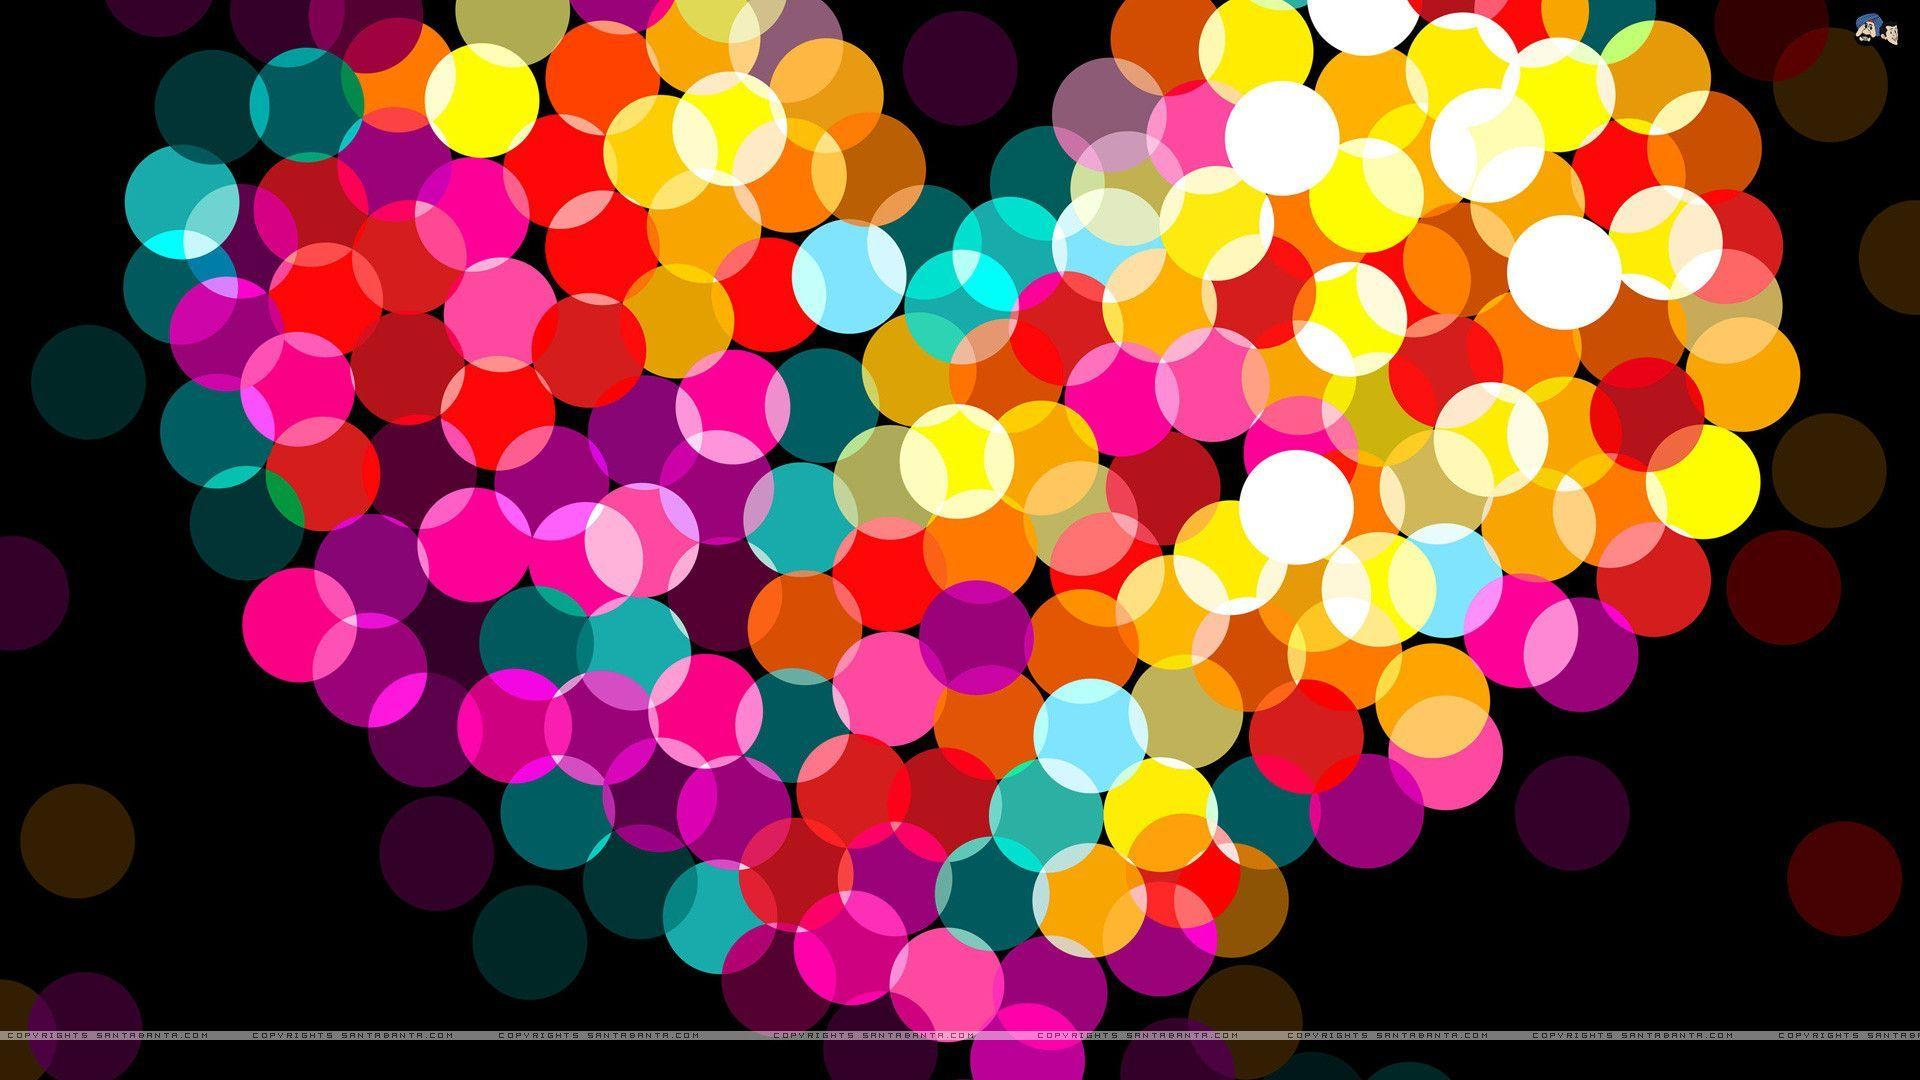 cool 3d colorful wallpaper love - photo #6